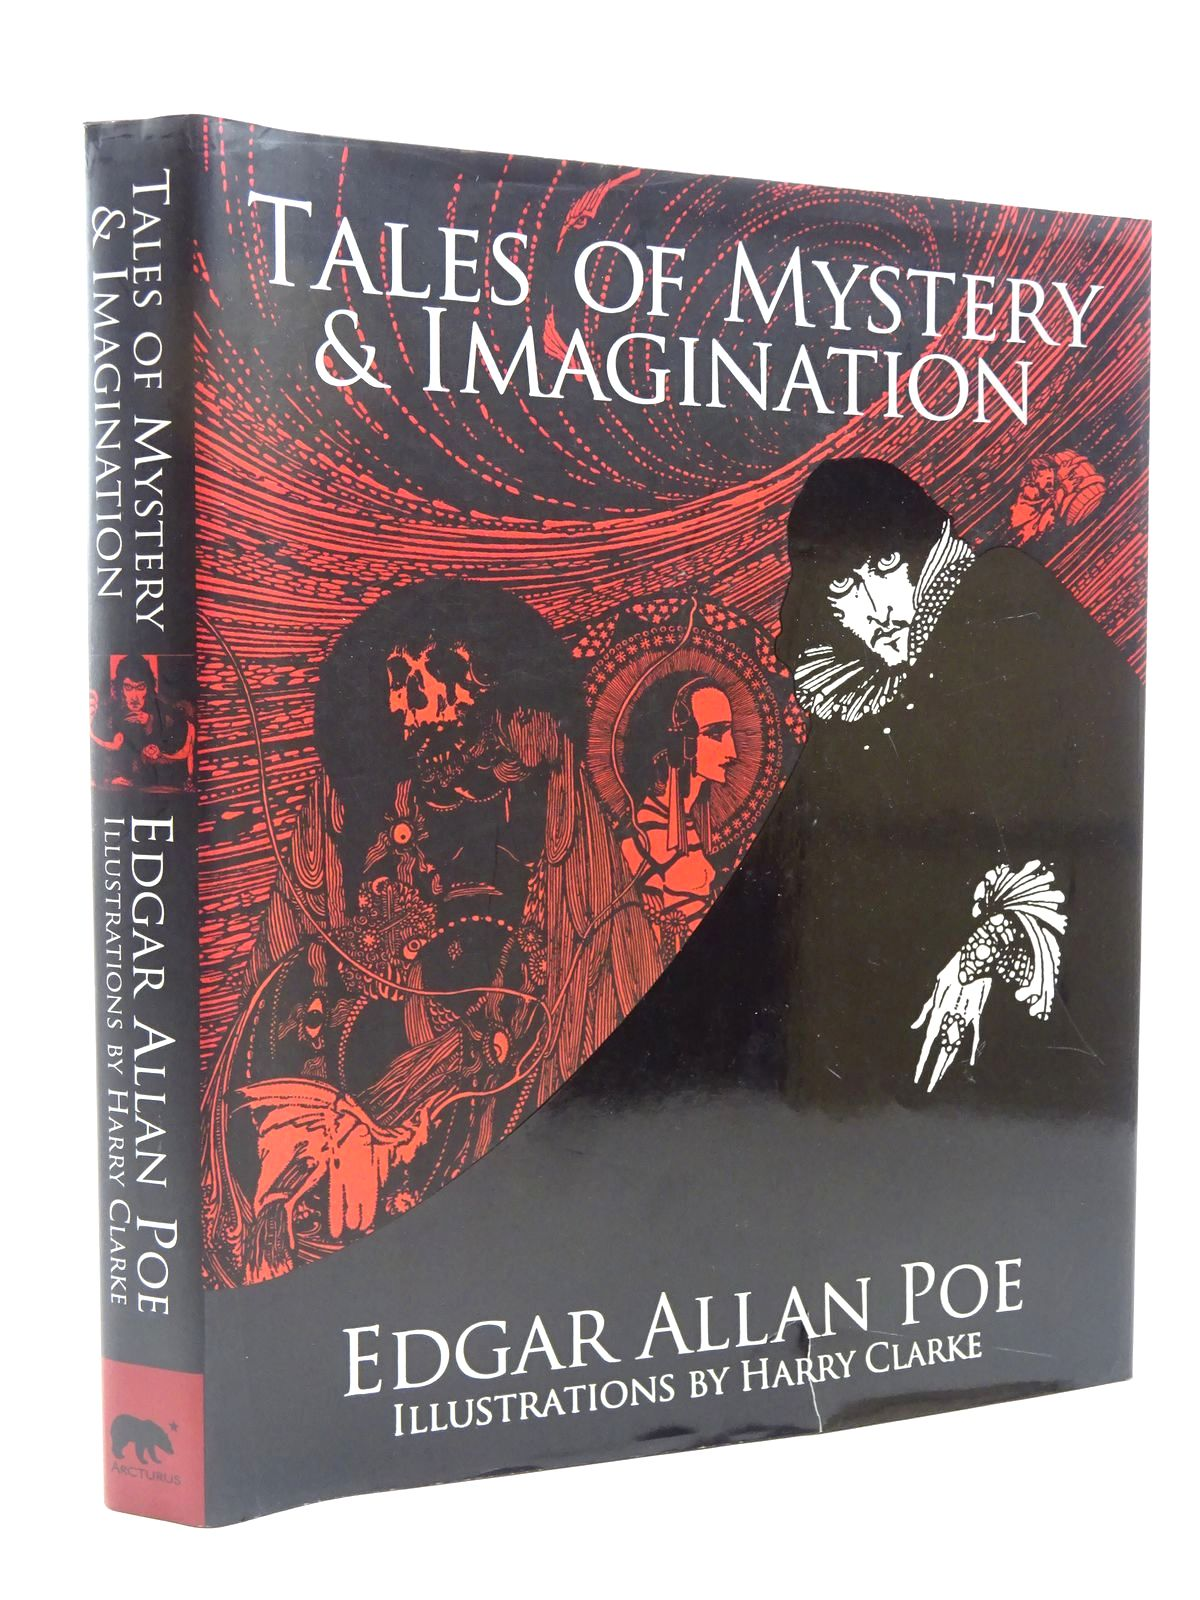 Photo of TALES OF MYSTERY AND IMAGINATION written by Poe, Edgar Allan illustrated by Clarke, Harry published by Arcturus Publishing Ltd. (STOCK CODE: 2124420)  for sale by Stella & Rose's Books